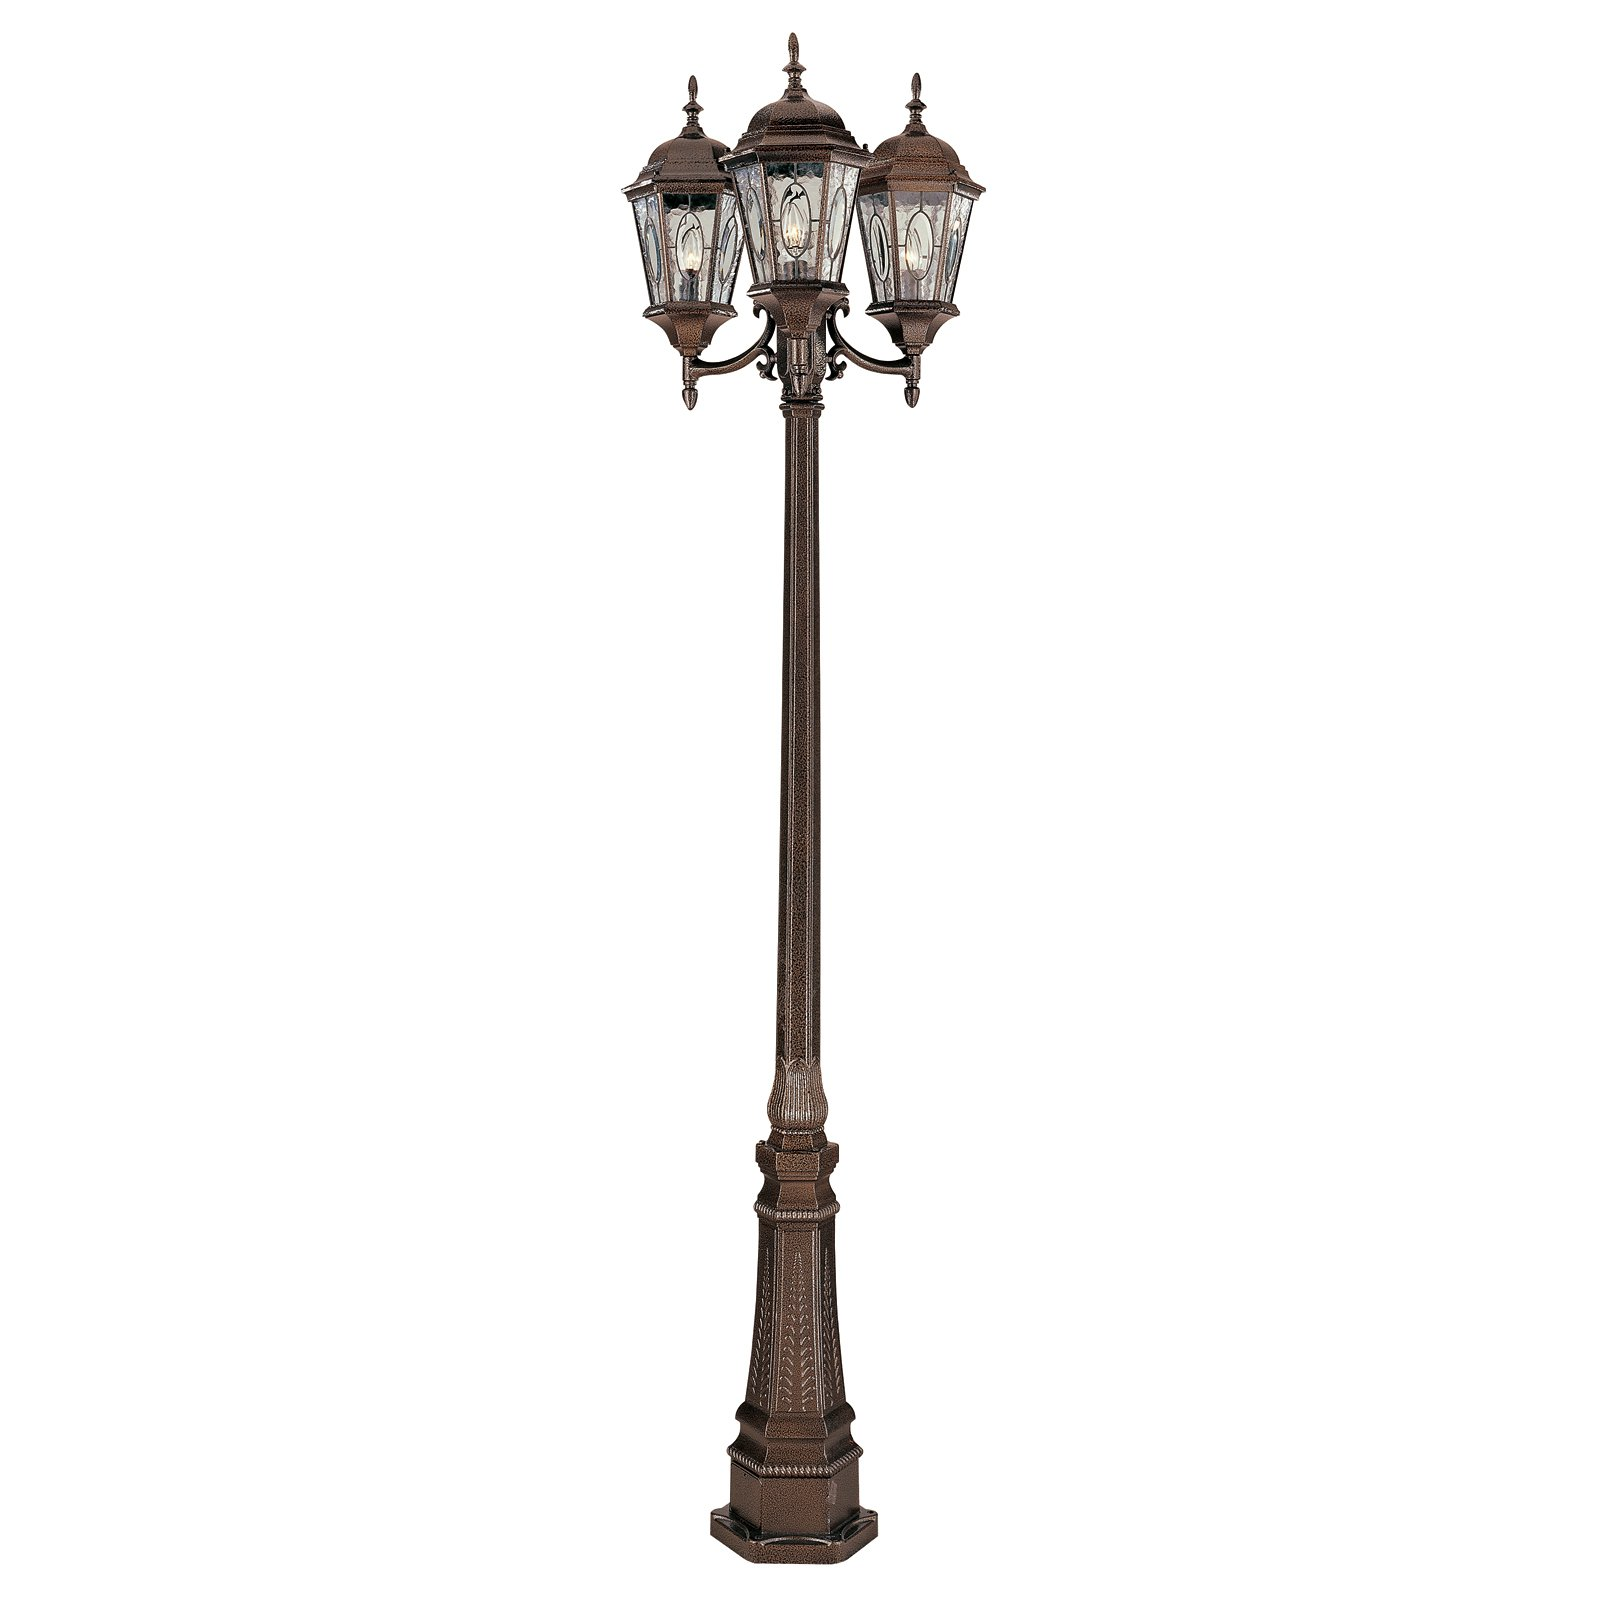 Exterior Lamp Posts 8 Foot Exterior Lamp Post with Decorative